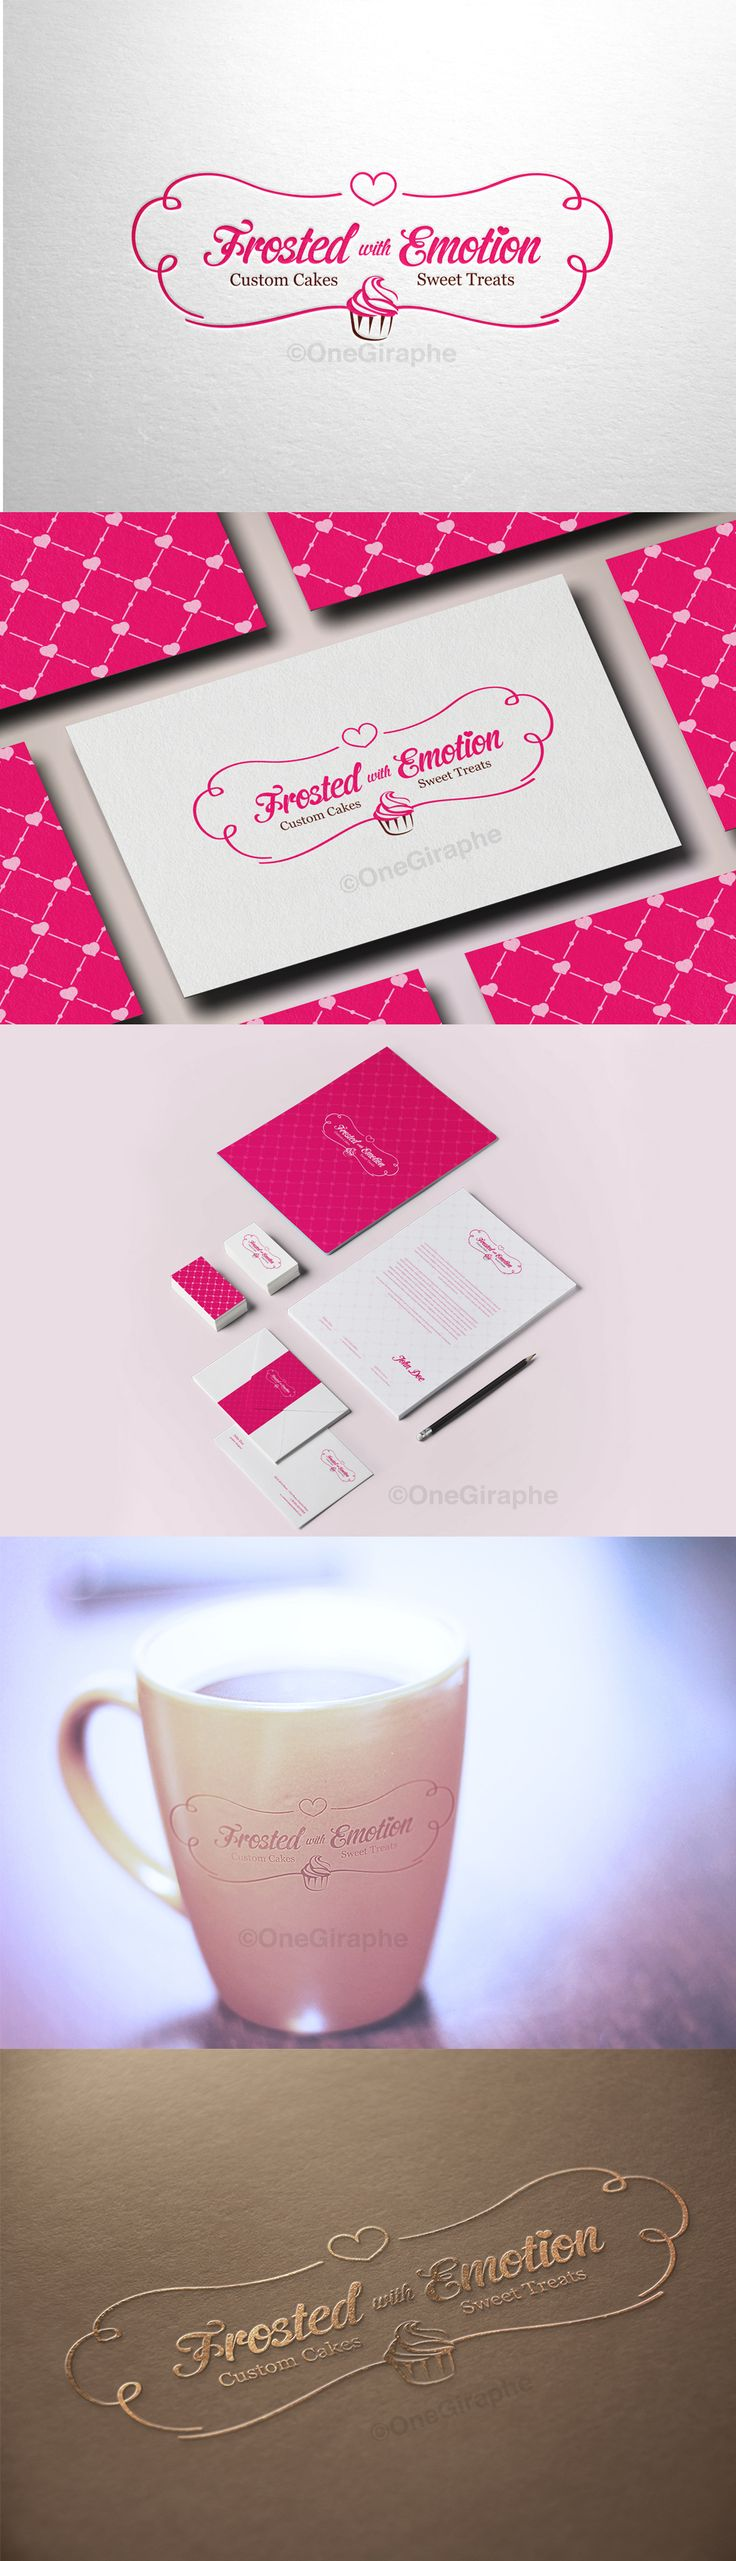 Branding for Cake, Cupcake & Bakery for sale! - Logo ( color variations and black / white ) + business card design ( 2 sides ) as bonus. Format files: eps, pdf, png, jpg or any other at request. Order now at: onegiraphe@gmail.com #cupcake #cake #logo #bakery #stand #pink #logo #design #sale #logostore #stocklogos #logopond #behance #brand #identity #brandidentity #graphic #graphicdesign #designer #gold #classic